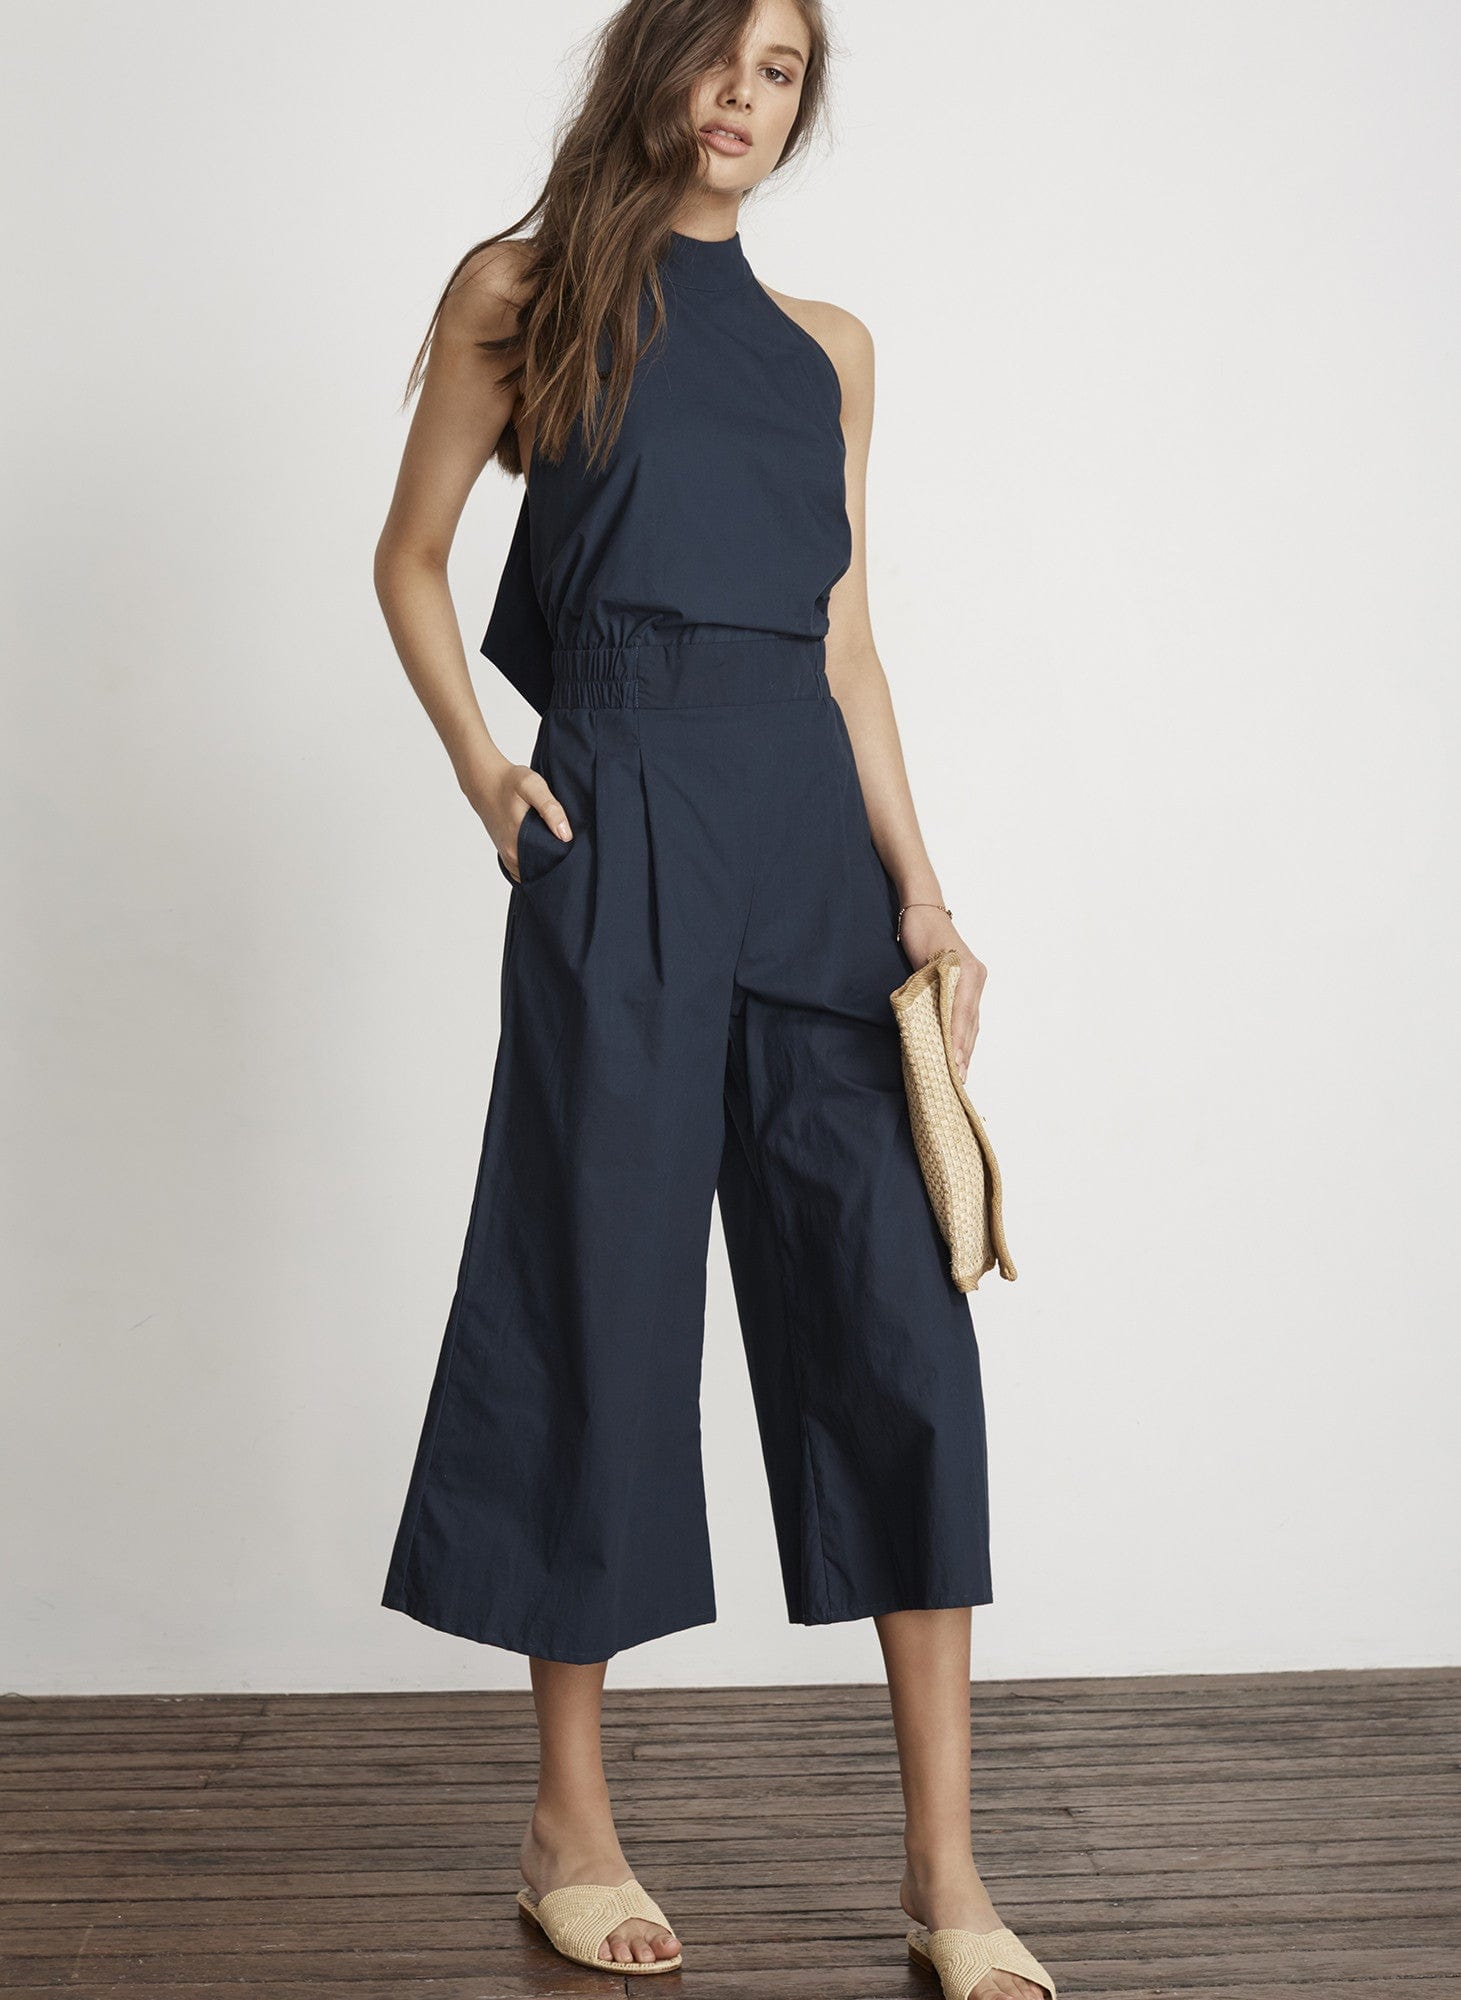 PLAIN DENIM NAVY - SHORE JUMPSUIT - FINAL SALE